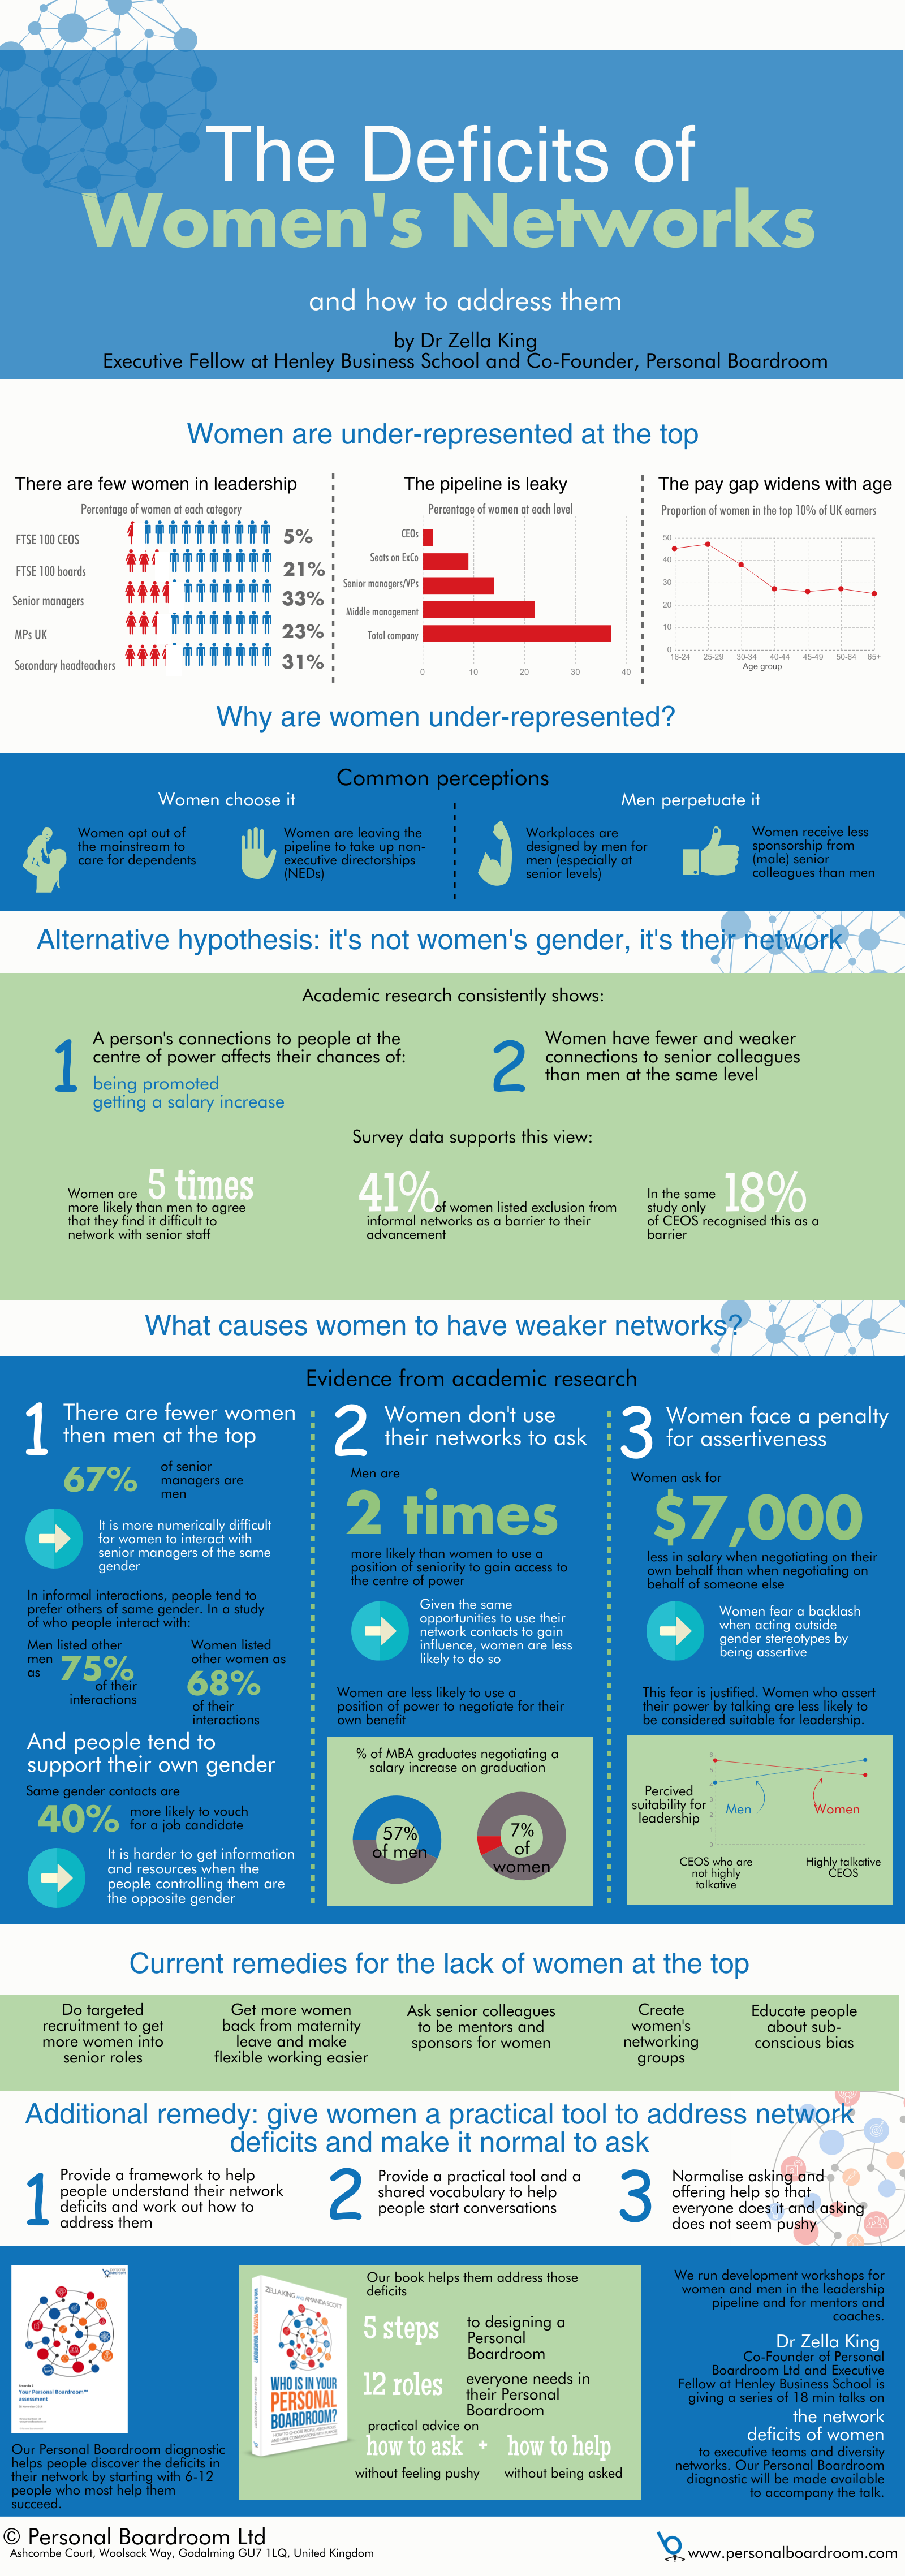 Deficits of Women's Networks infographic and statistics